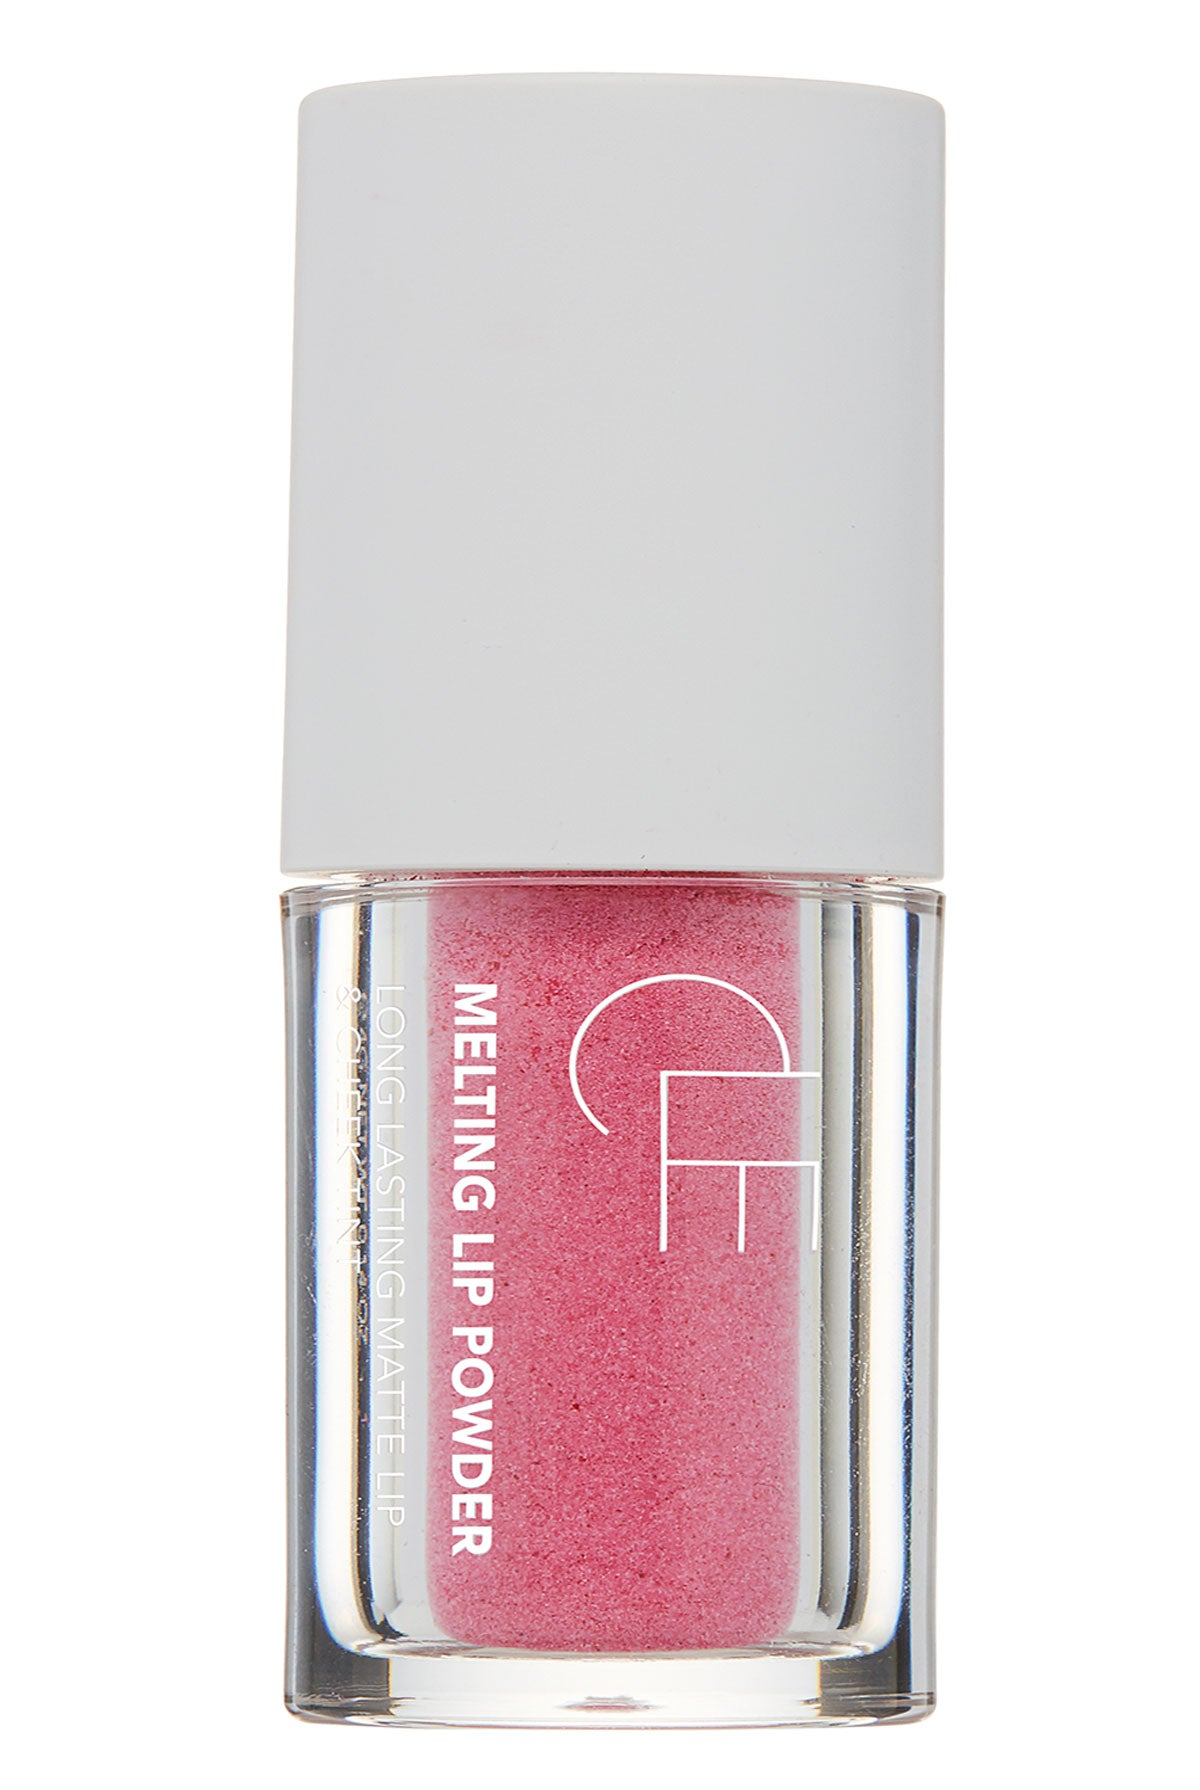 CLE Cosmetics Melting Lip Colour Barbie Pink - ONE SIZE Pink